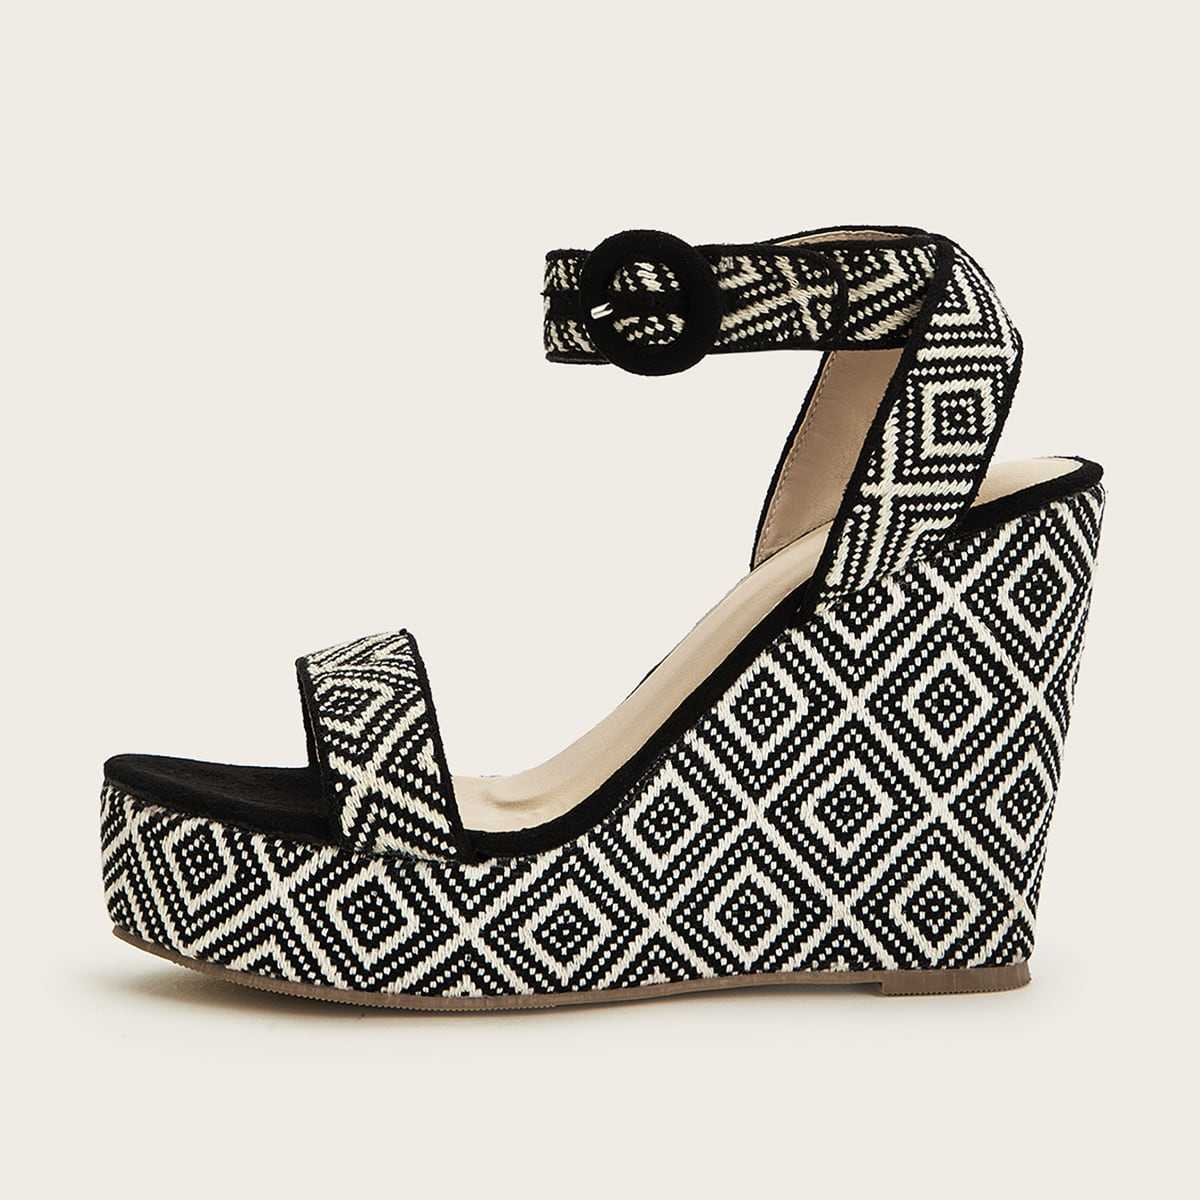 Geometric Knit Ankle Strap Wedges in Black and White by ROMWE on GOOFASH